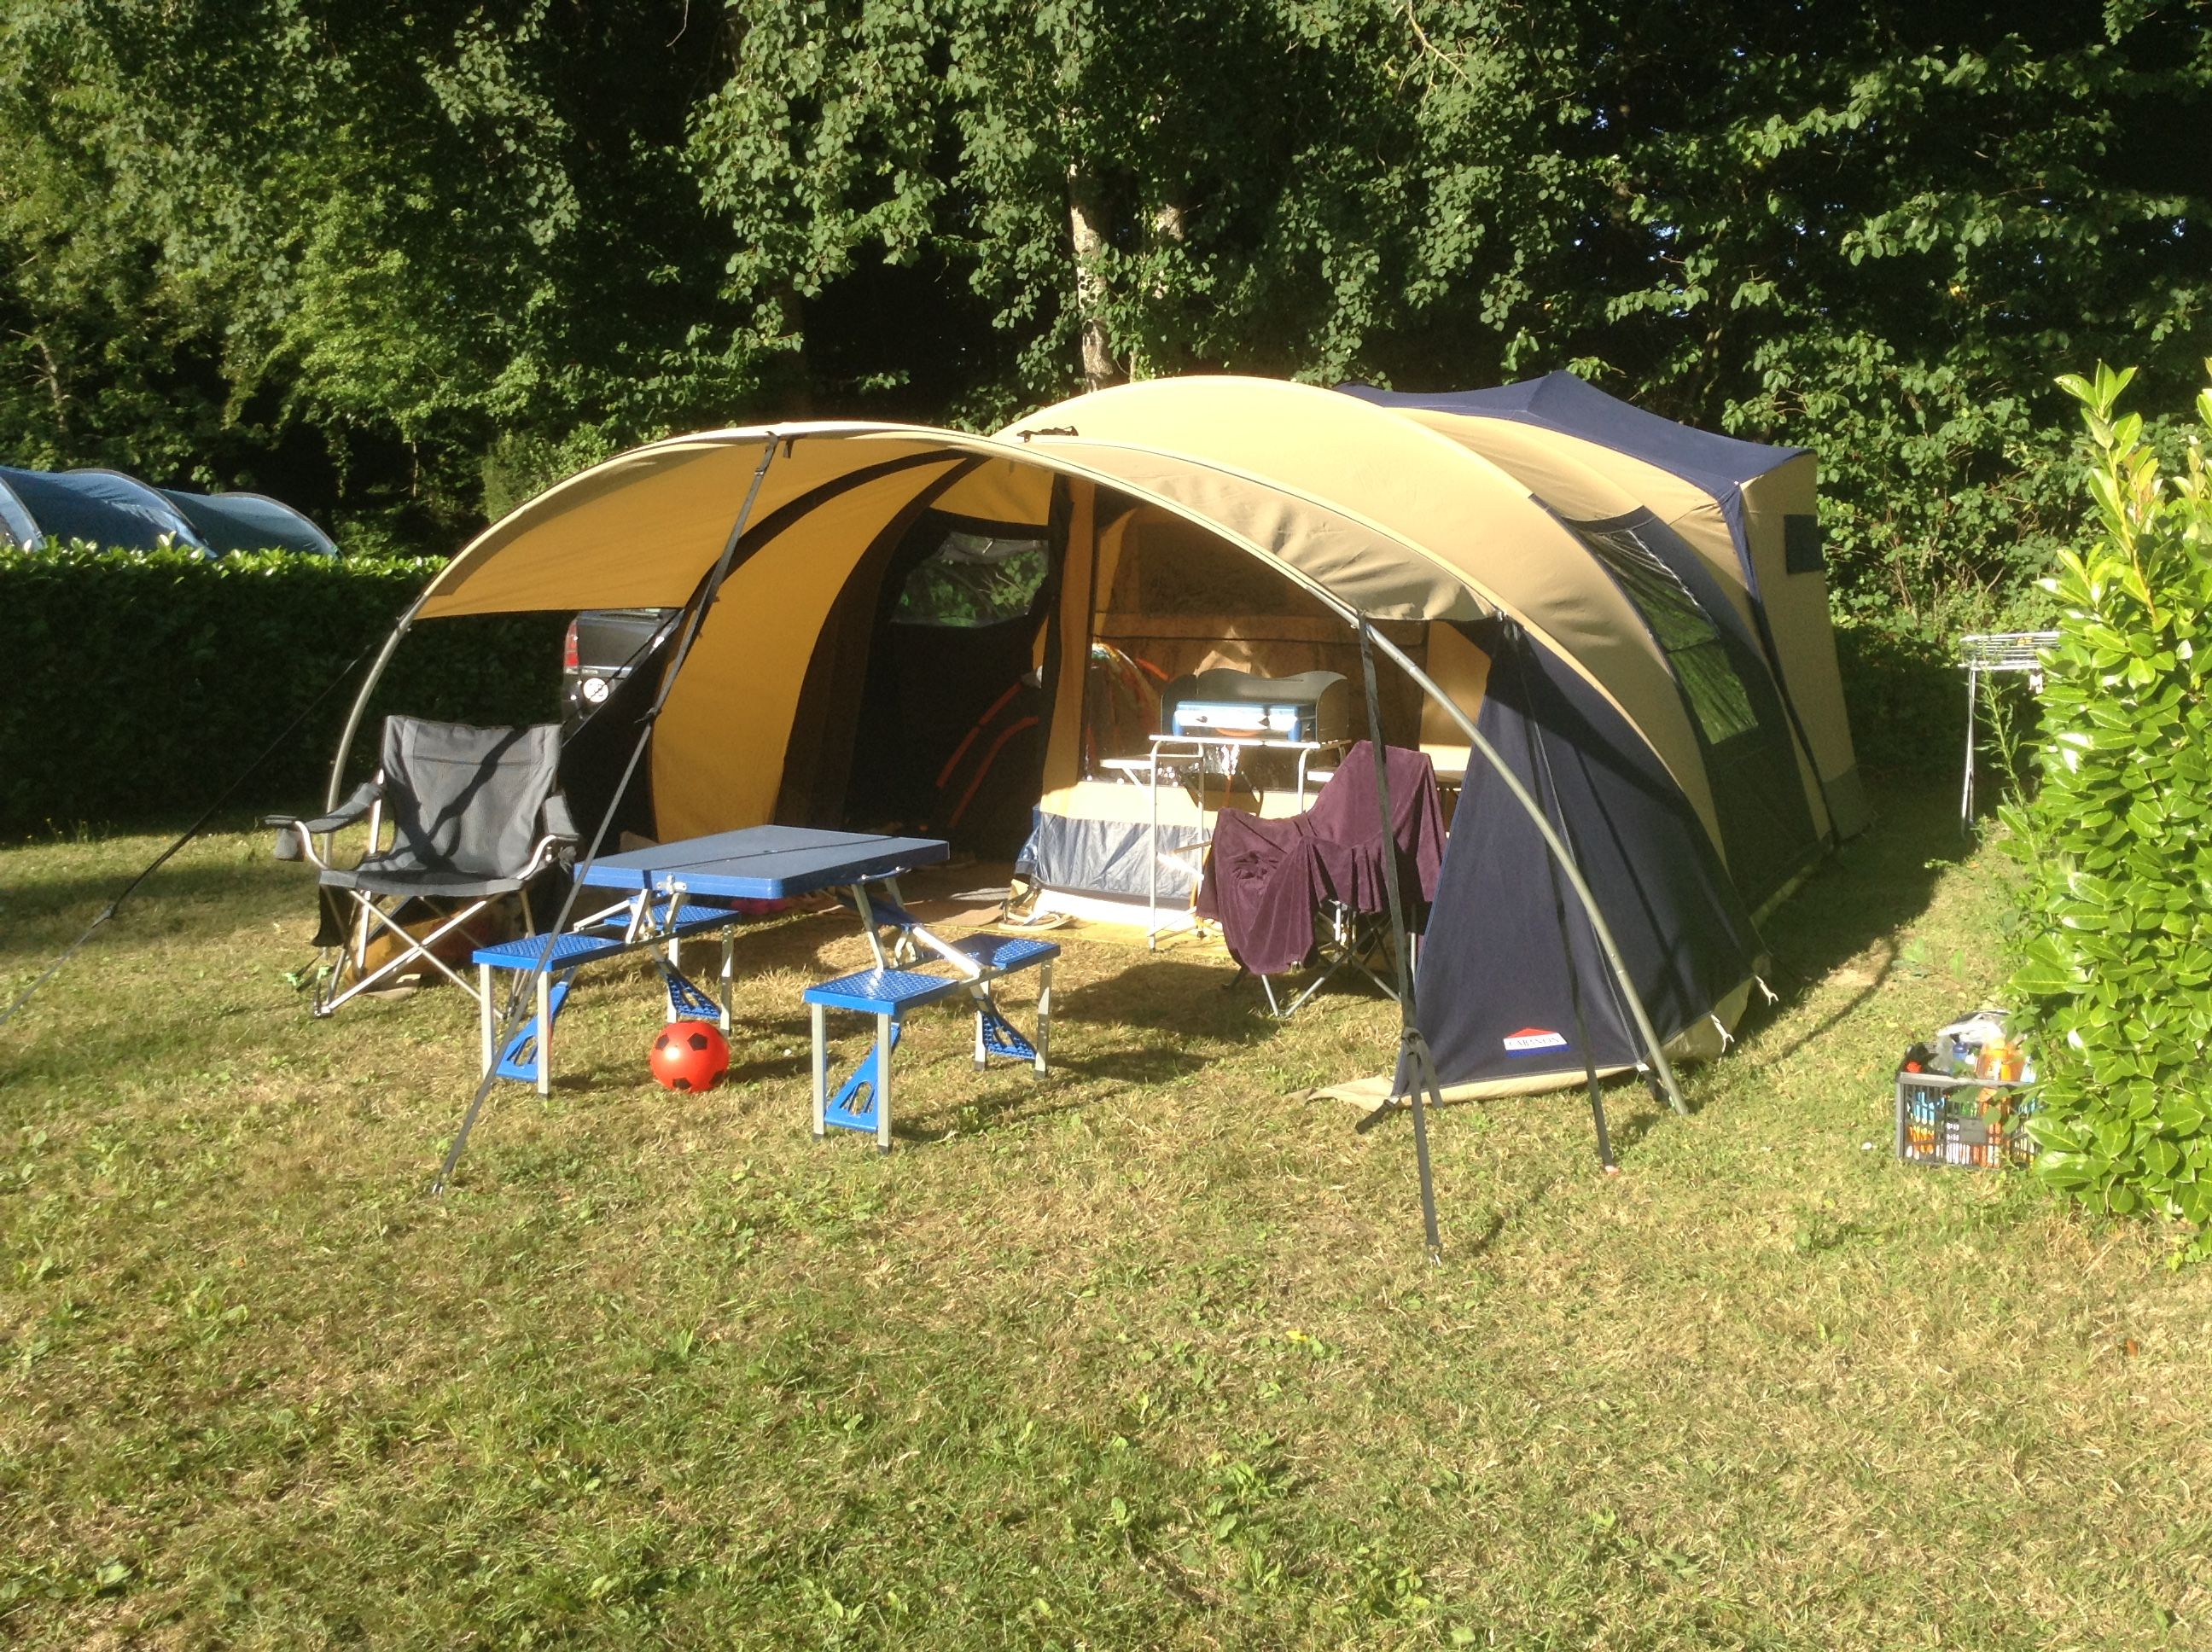 cabanon stratos.my tent on site in Brittany..perfect pitch.fantastic weather & cabanon stratos.my tent on site in Brittany..perfect pitch ...